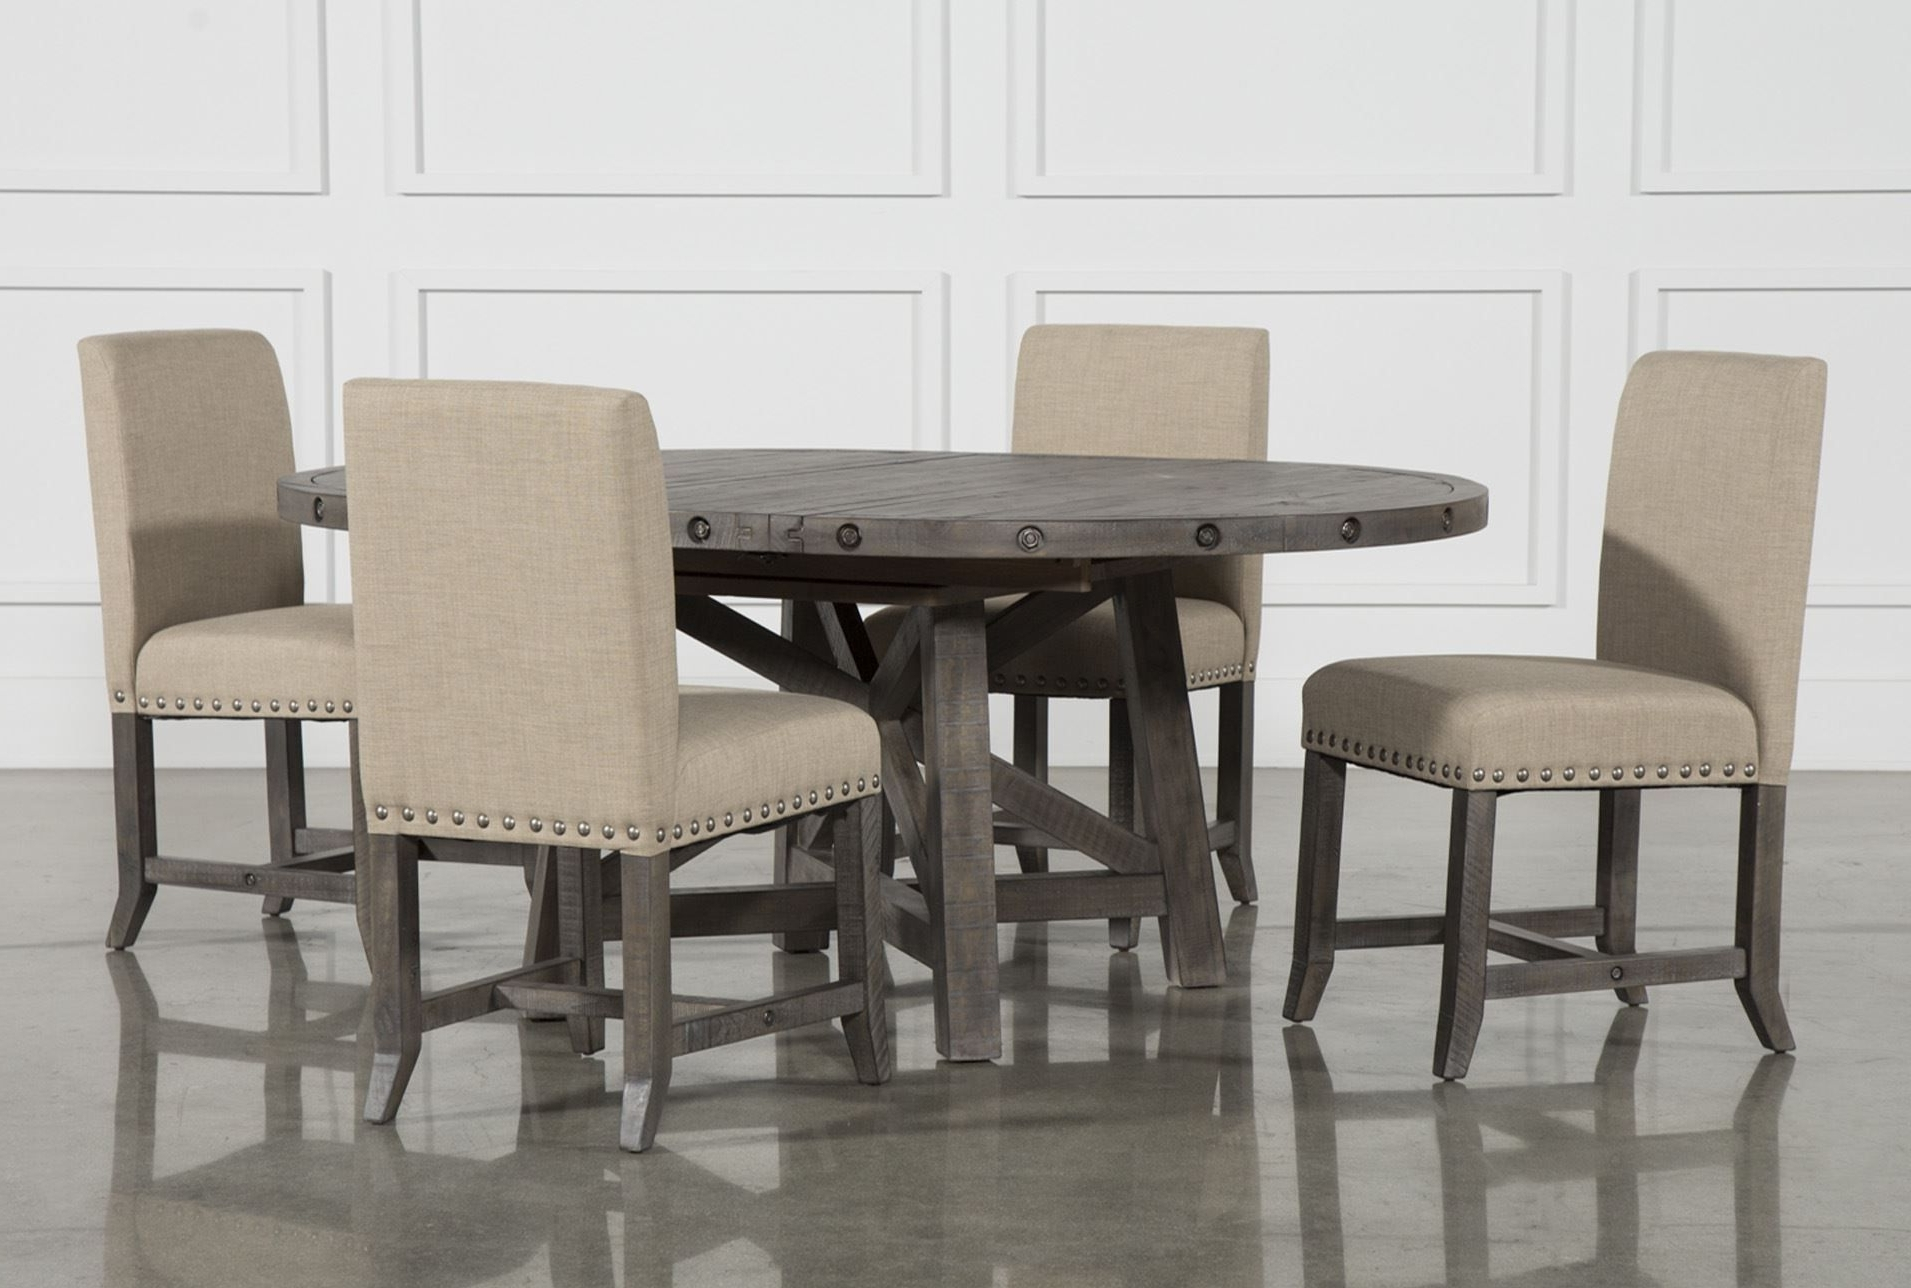 Jaxon Grey 5 Piece Round Extension Dining Set W/upholstered Chairs Pertaining To Recent Jaxon 7 Piece Rectangle Dining Sets With Upholstered Chairs (View 2 of 25)